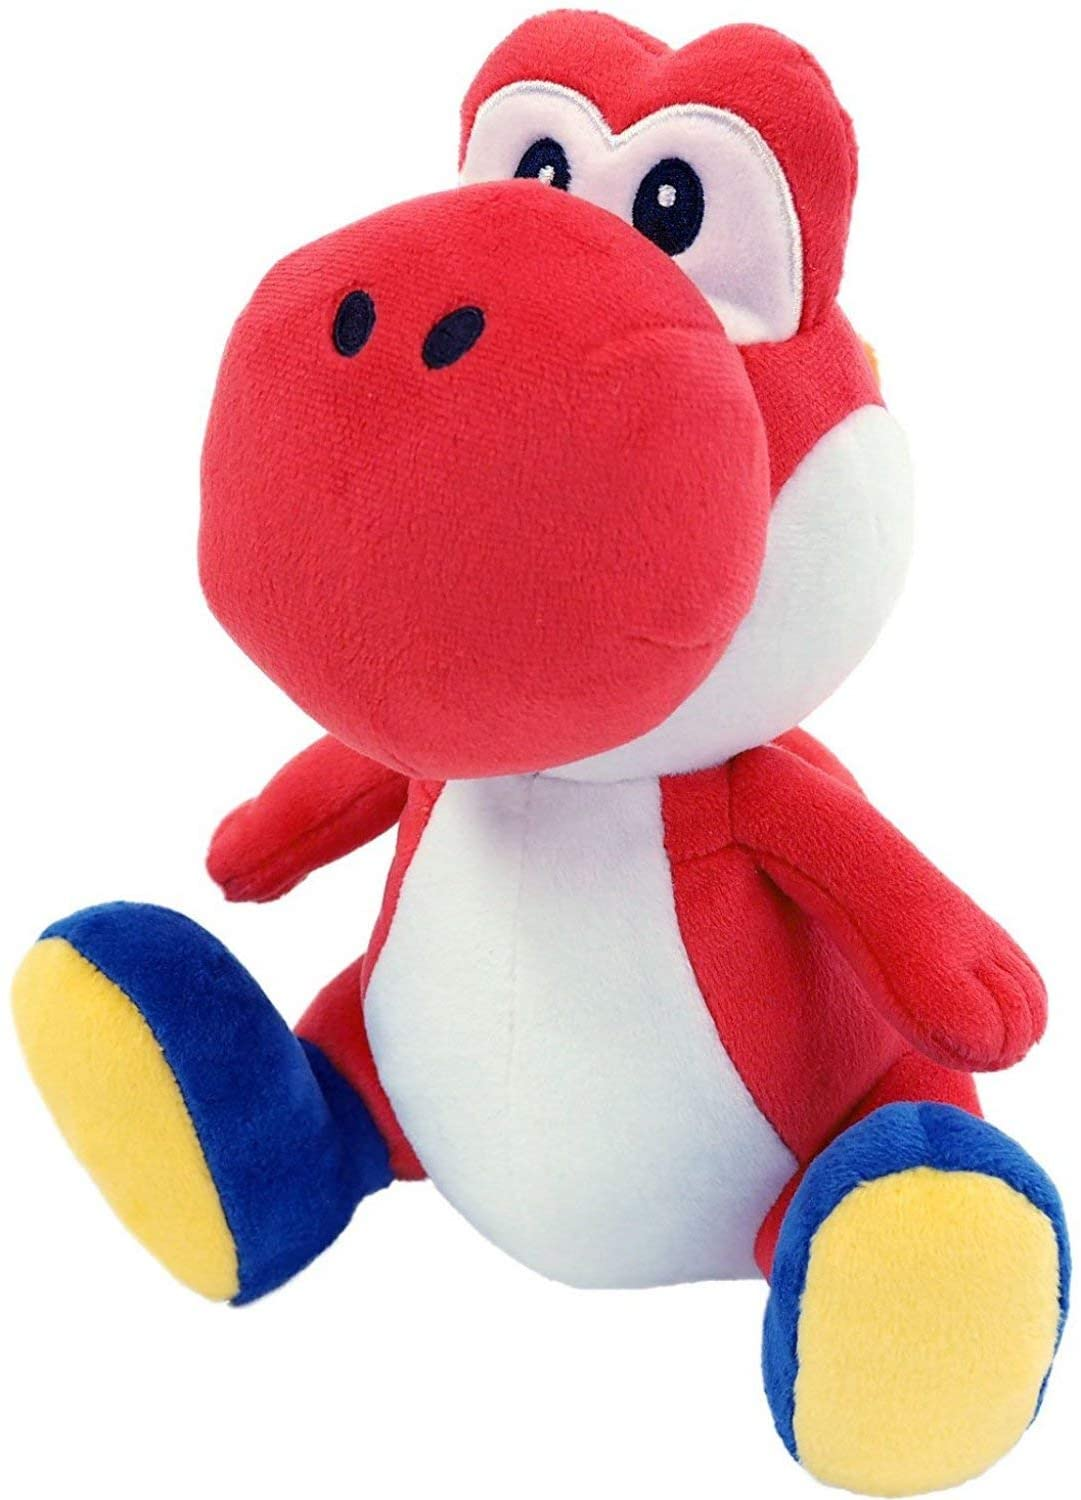 Little Buddy Red Yoshi Plush 8""